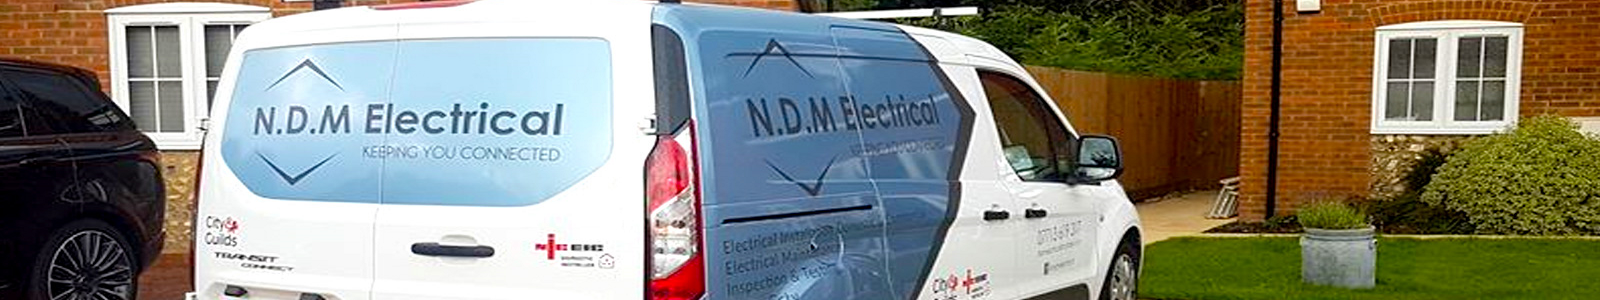 Electrician in Hampshire banner photo of van